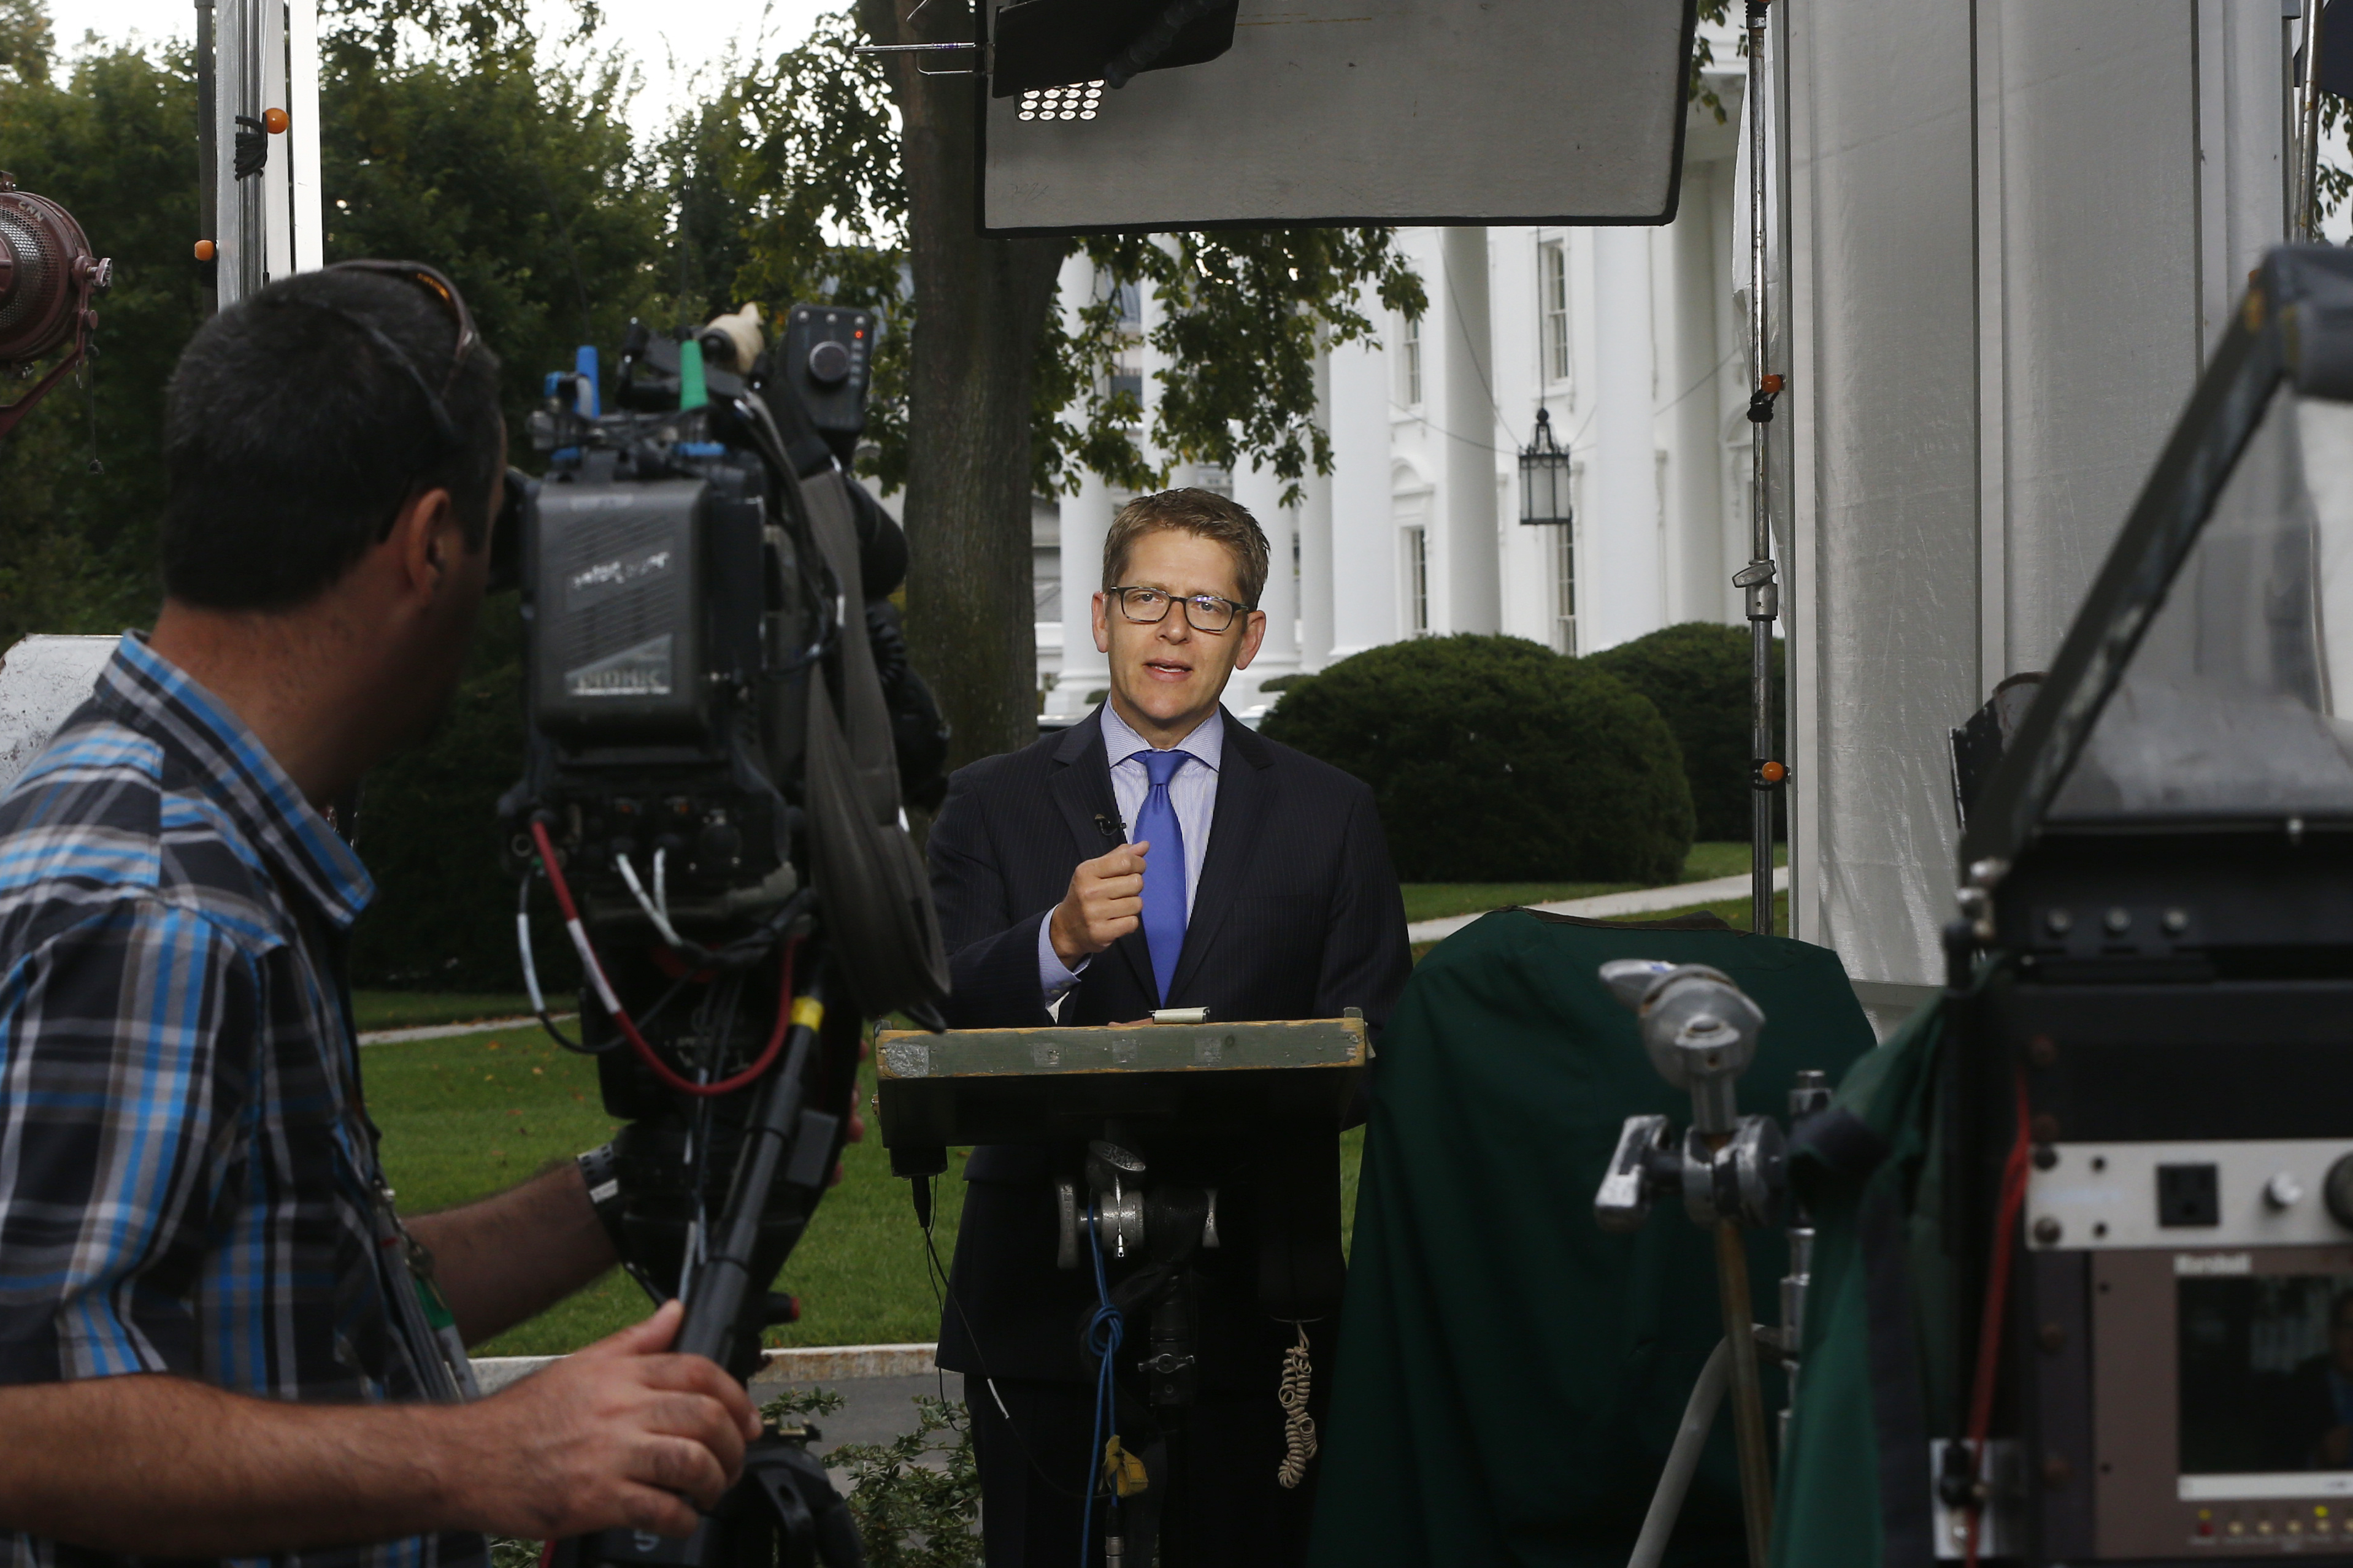 White House Press Secretary Jay Carney speaks about the government shutdown on the morning television news shows at the White House on Oct. 1, 2013 in Washington.